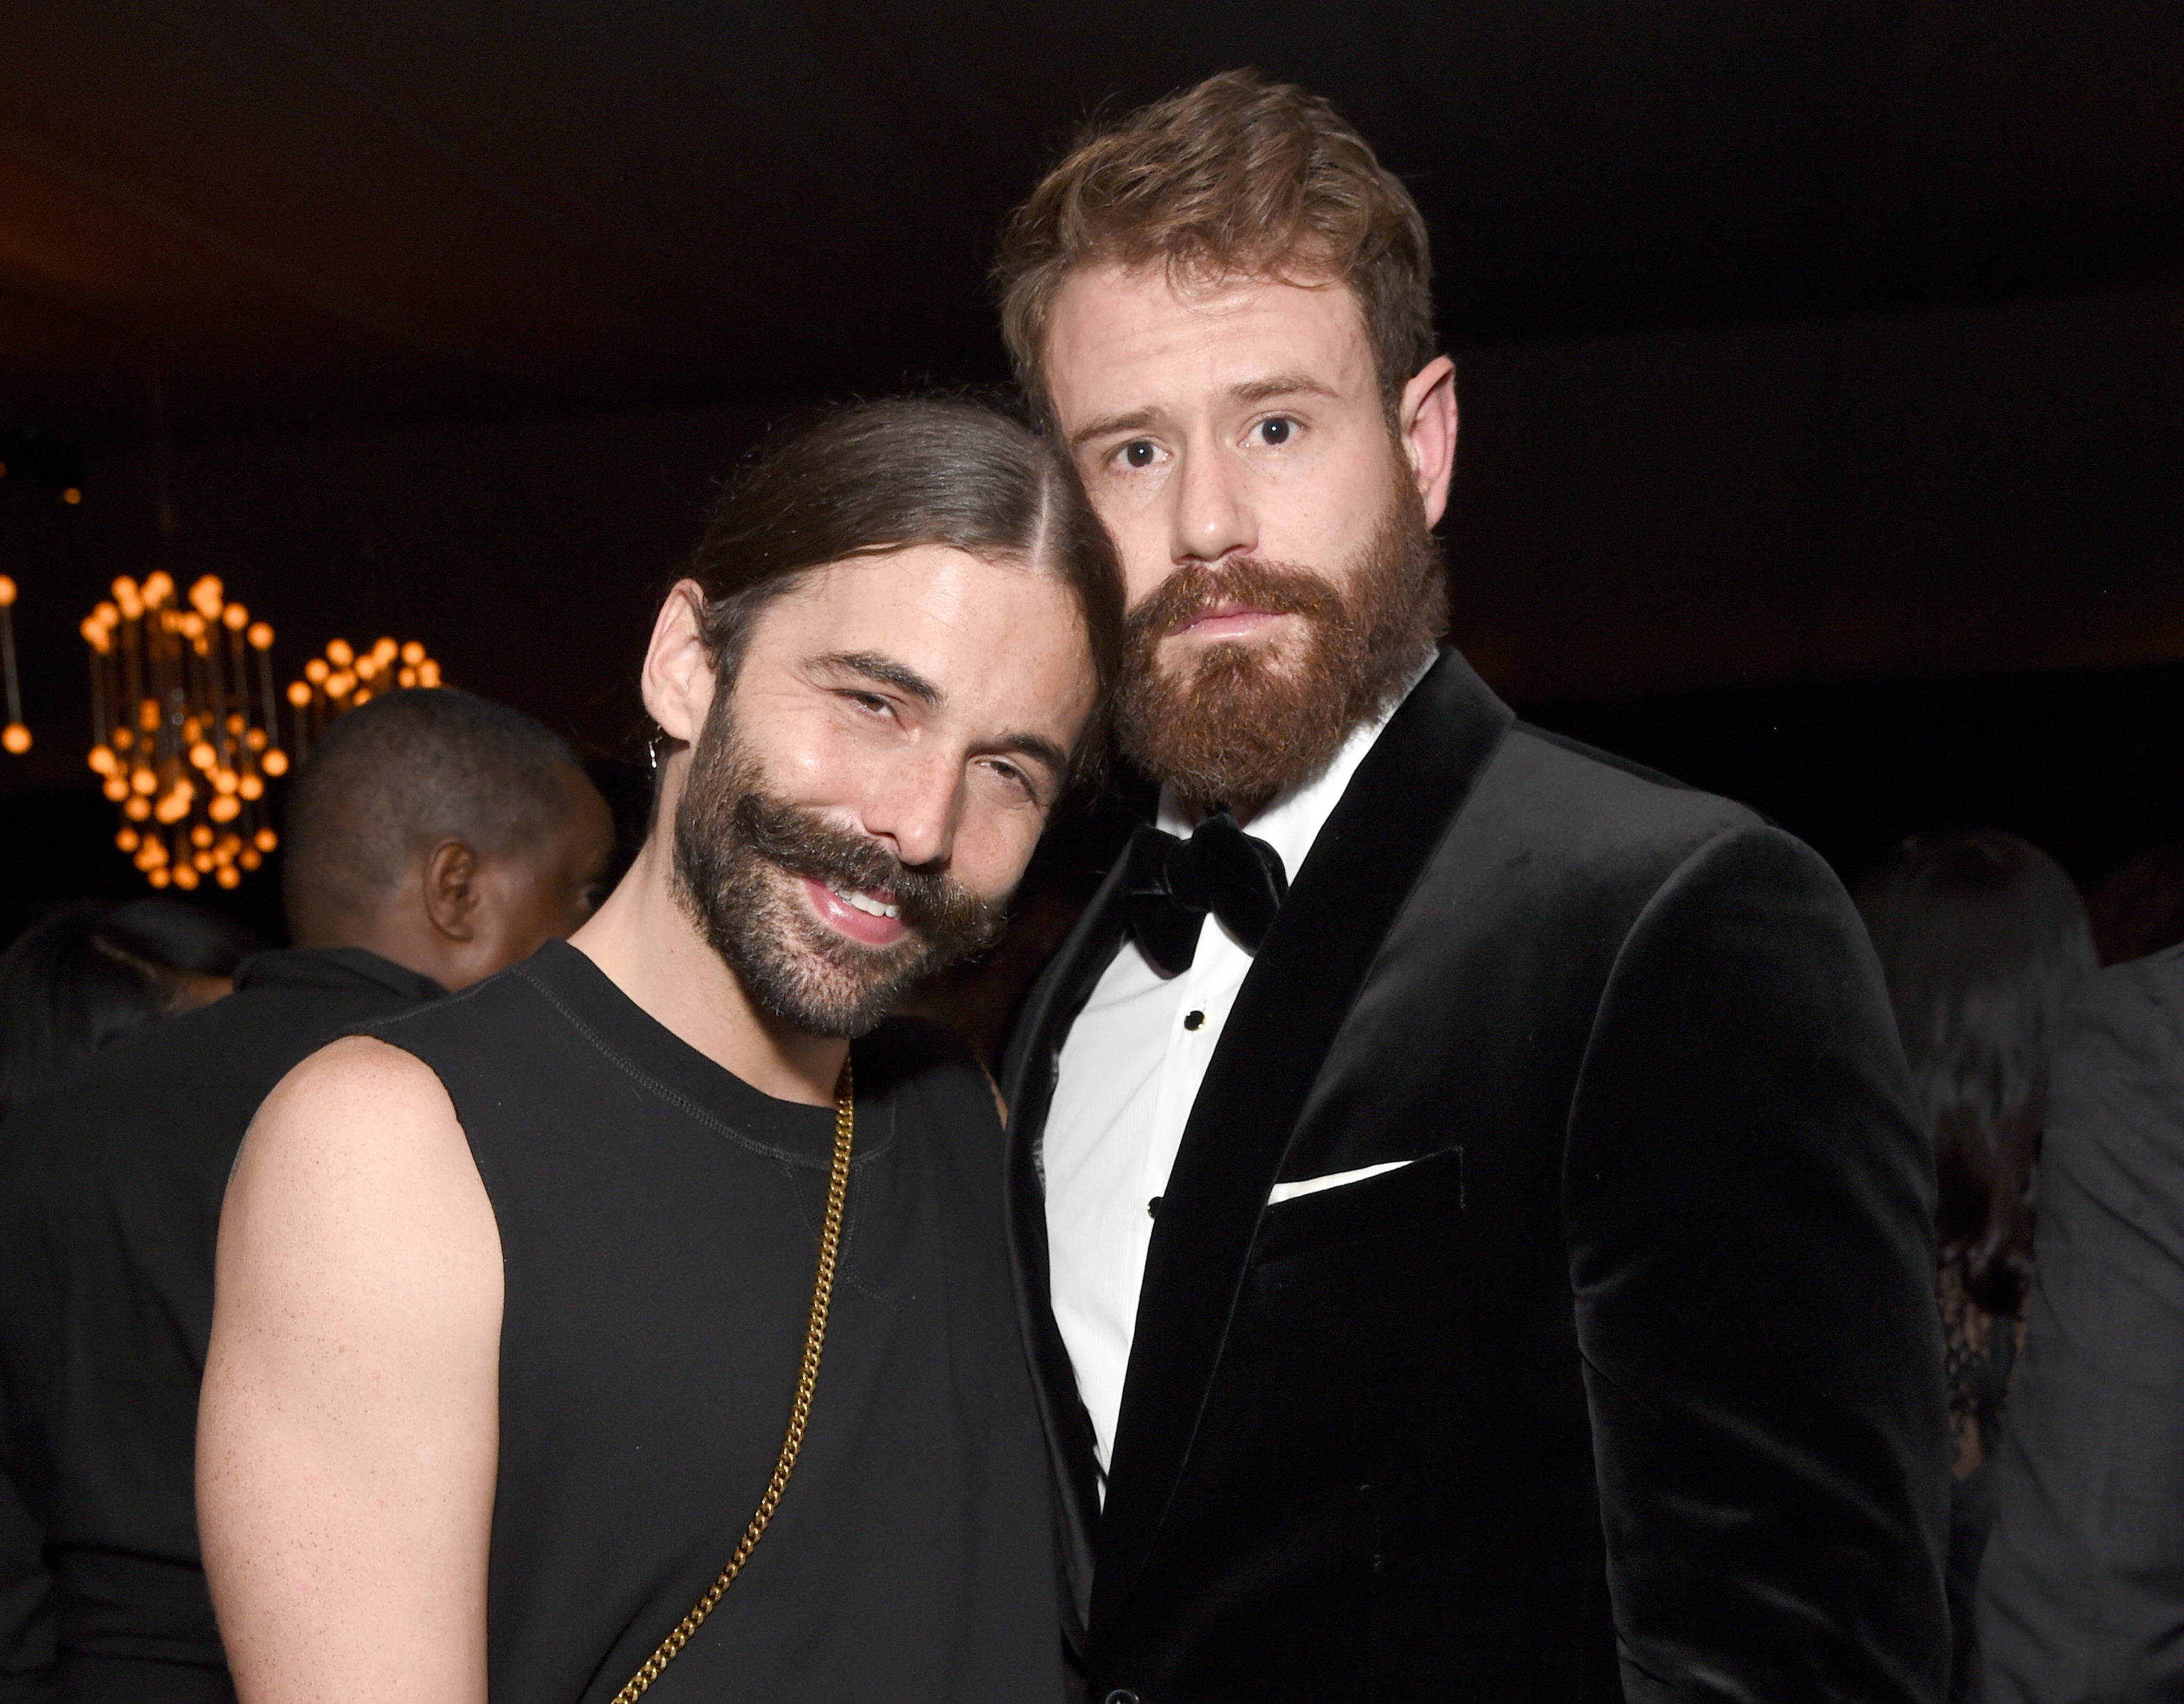 Jonathan Van Ness and his boyfriend have broken up, and JVN has a message for his fans